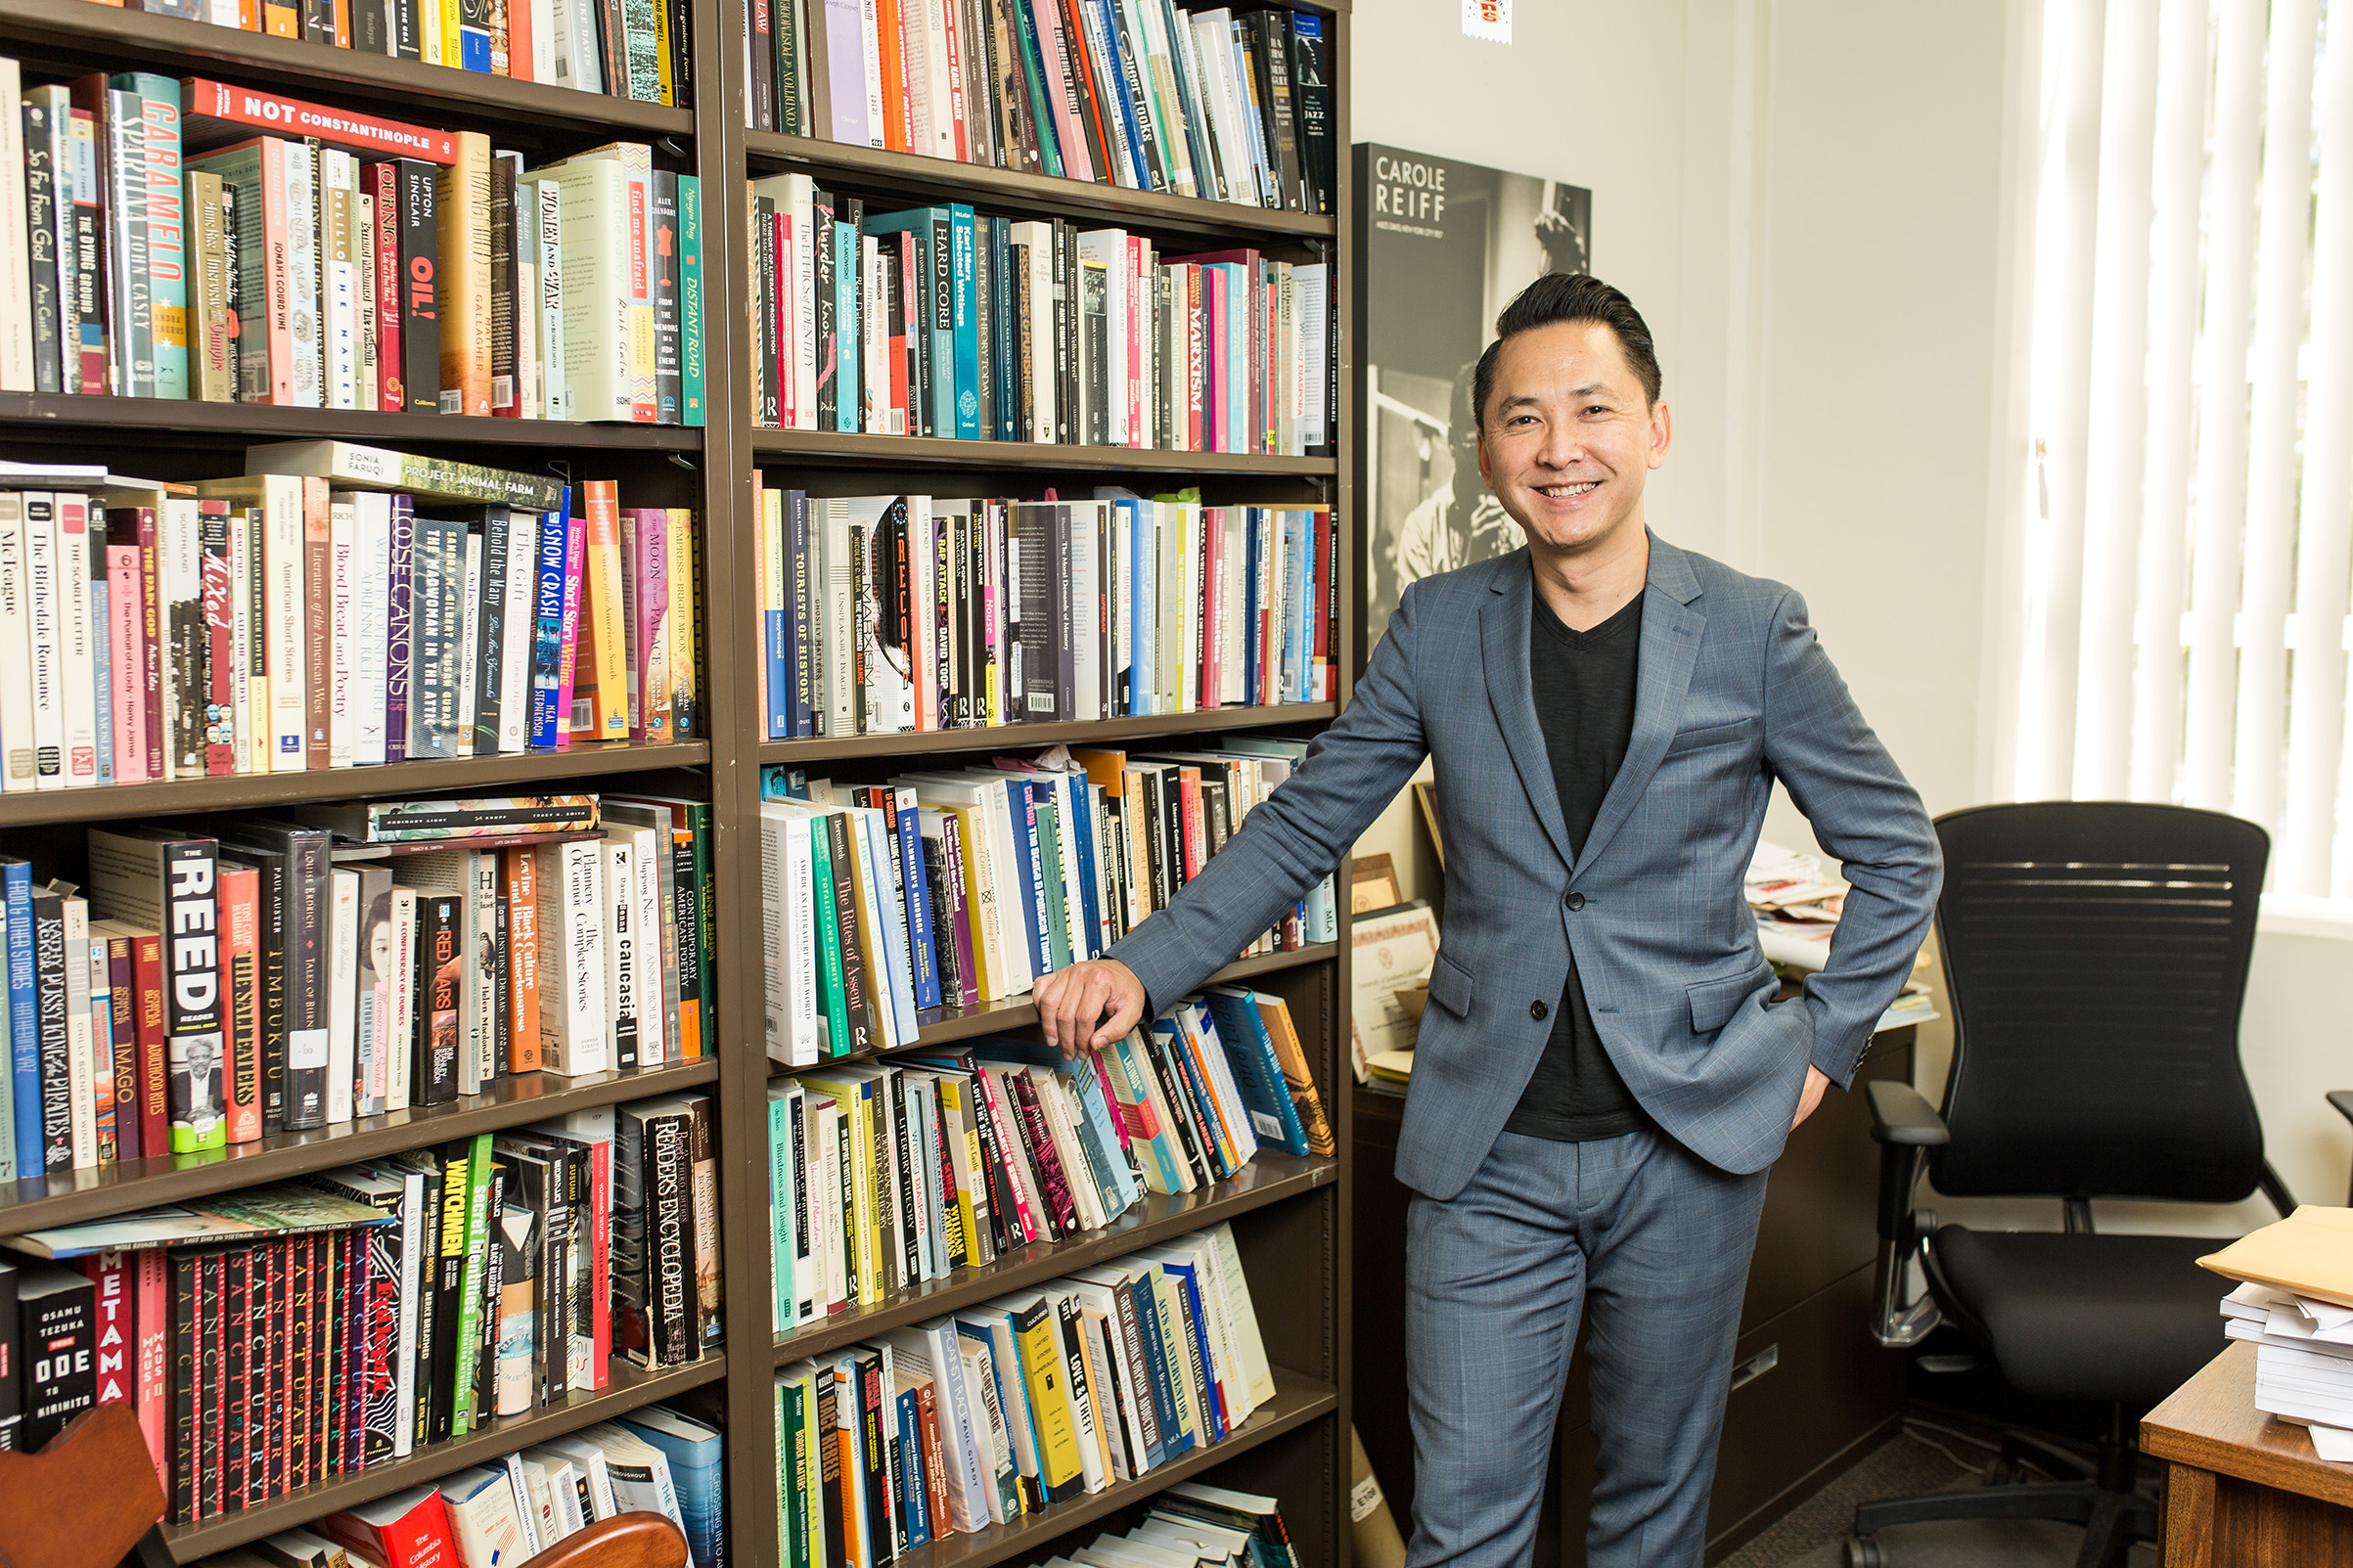 Viet Thanh Nguyen, 2017 MacArthur Fellow, University of [f500link]Southern[/f500link] California, Los Angeles, September 23, 2017.